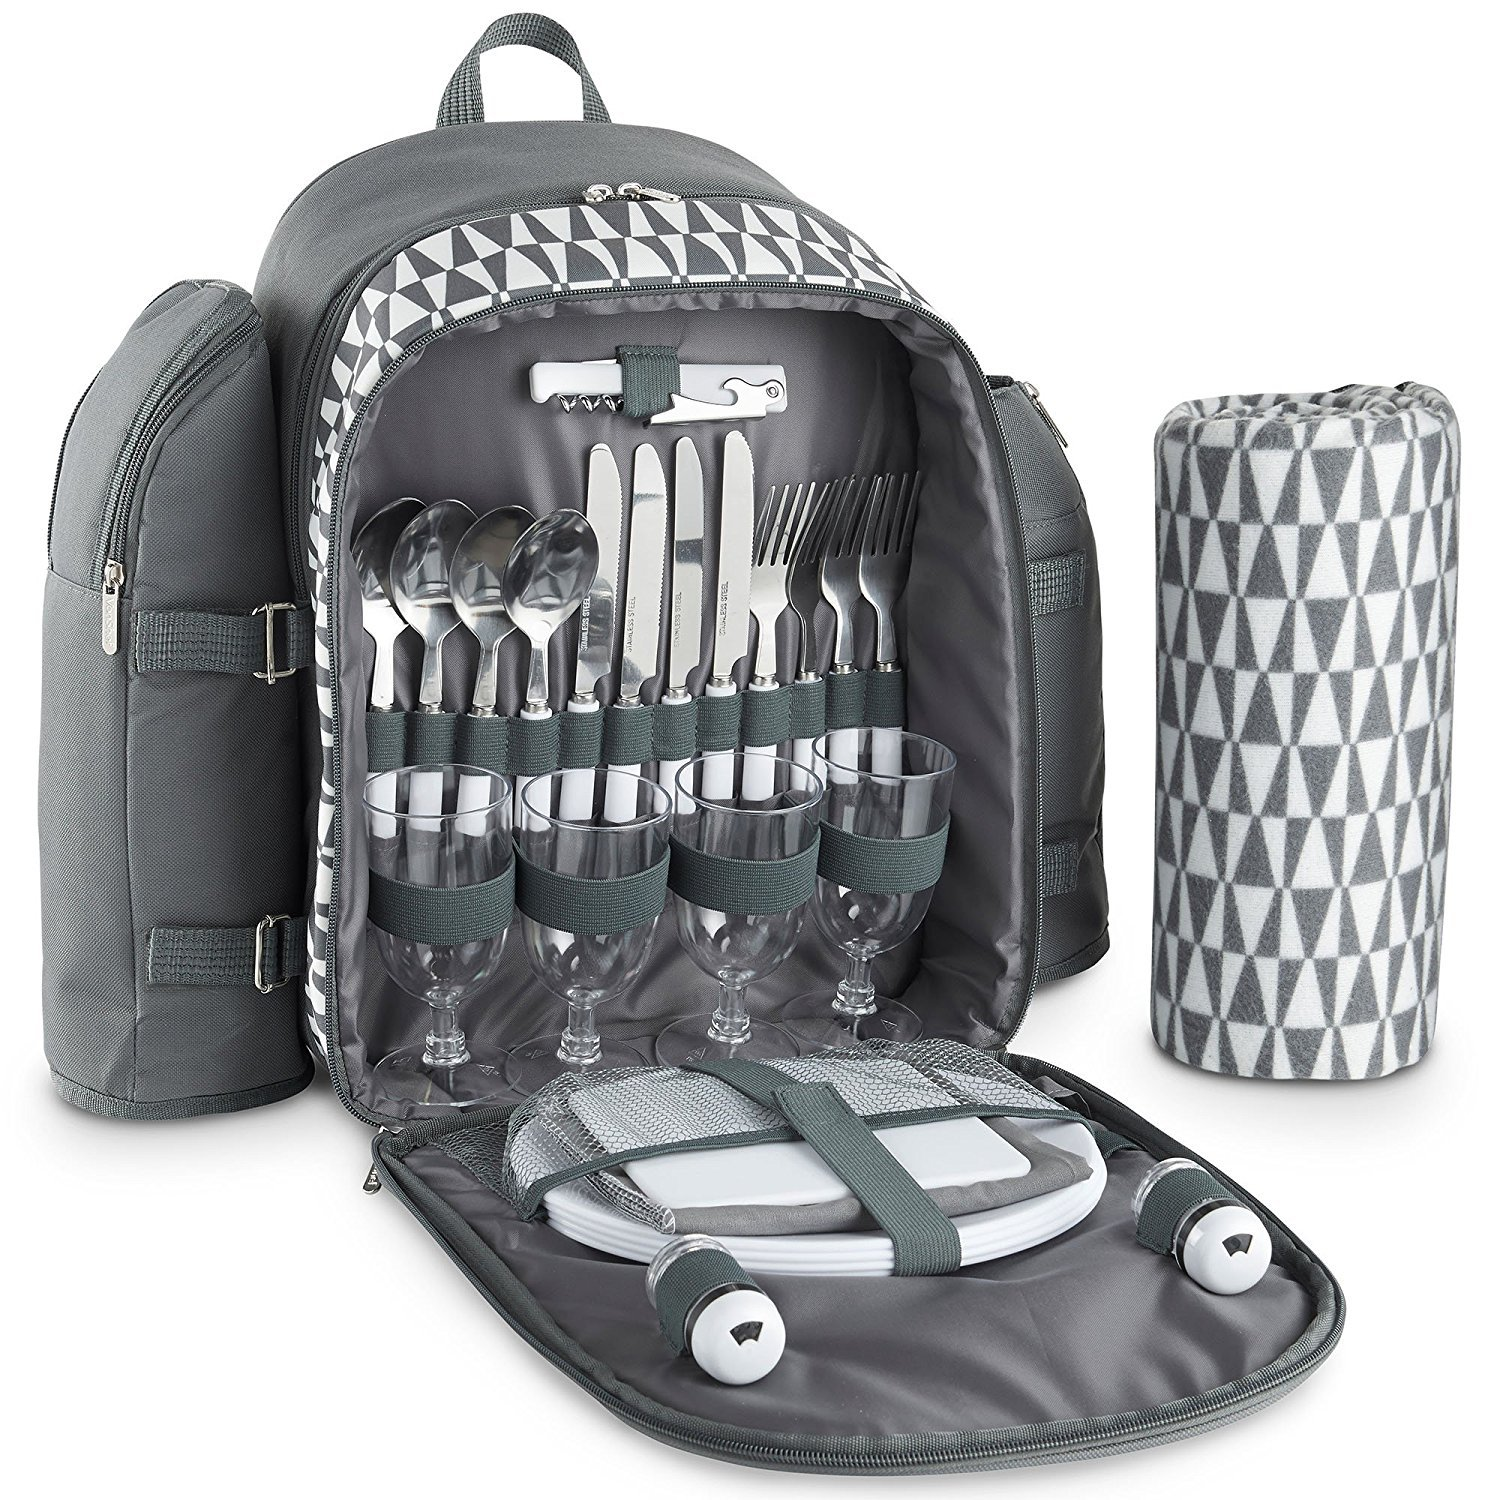 VonShef 4 Person Outdoor Picnic Backpack Bag Set With Blanket – Includes 29 Piece Dining Set & Insulated Cooler Compartment to Keep Food Chilled for Longer - Gray by VonShef (Image #1)